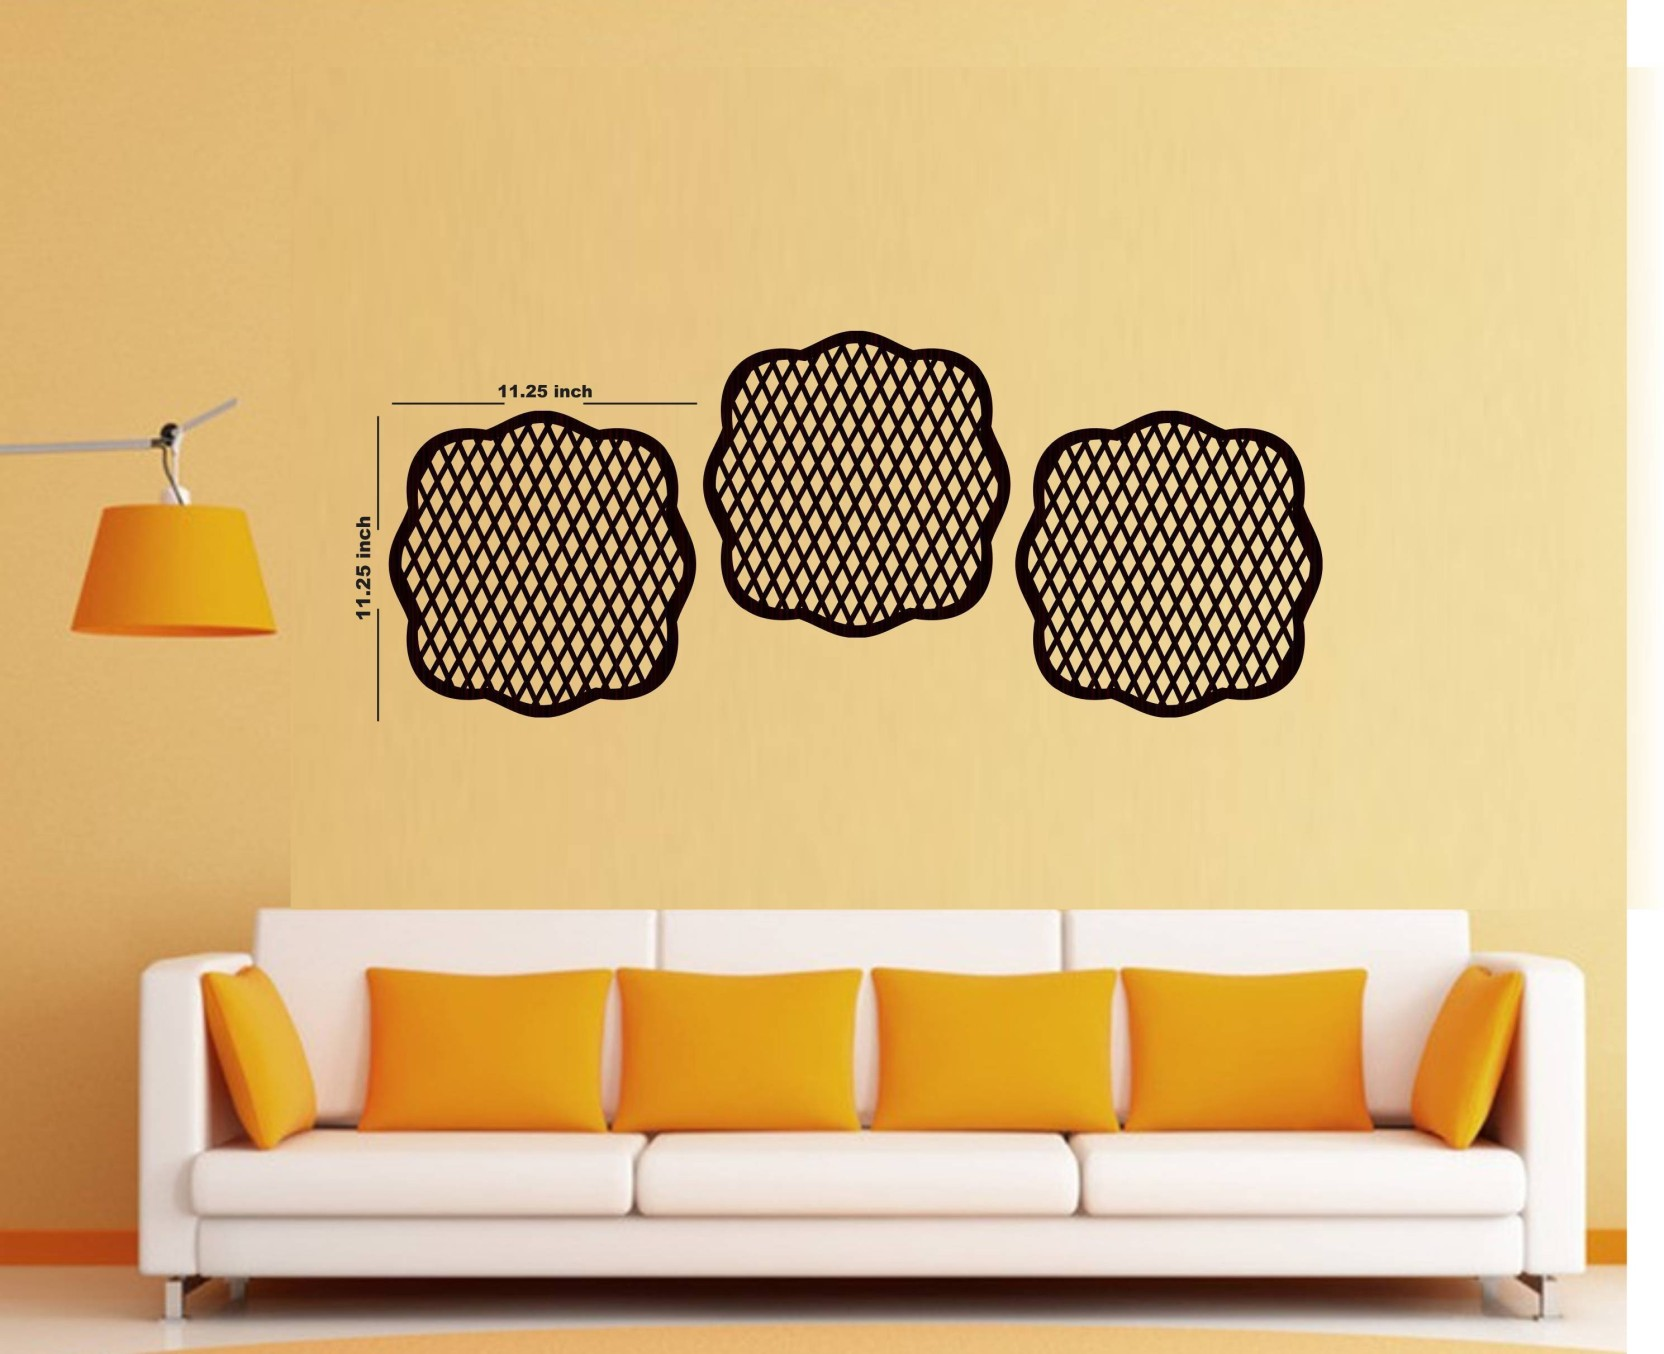 Fine Creative Wall Art Do Yourself Gallery - Wall Art Ideas ...